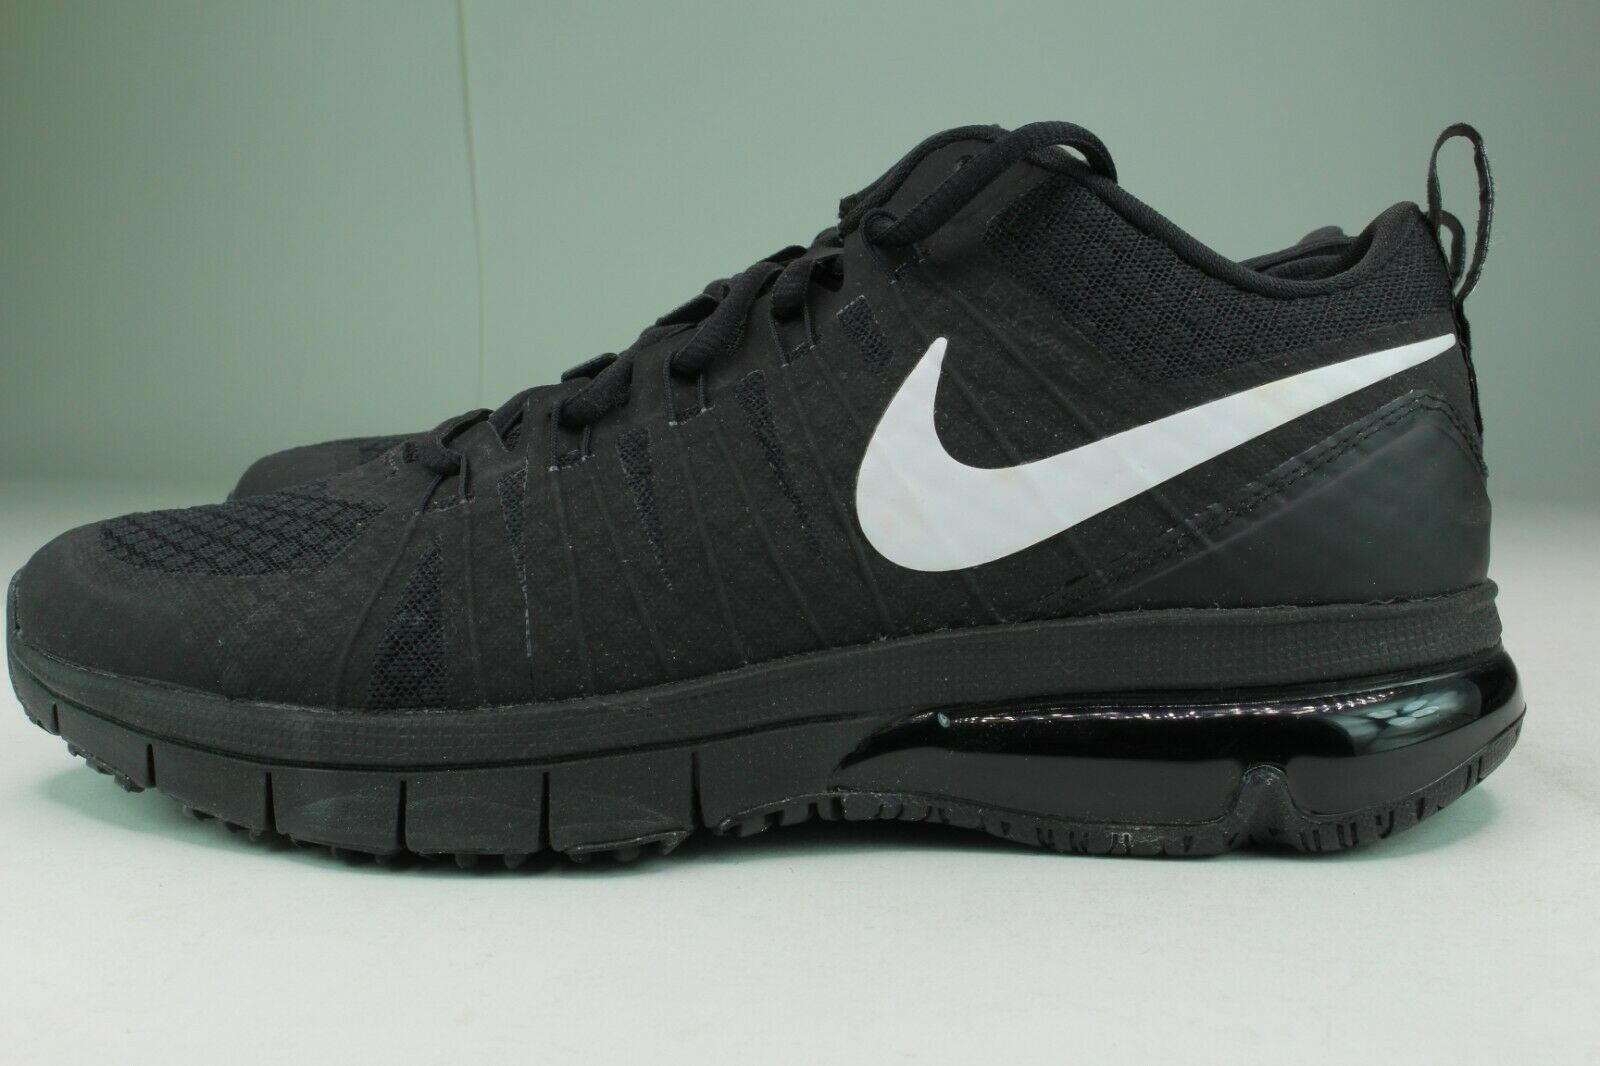 NIKE AIR MAX TR180 TB MEN Taille 8.5 noir blanc NEW RARE STYLISH AND COMFORTABLE